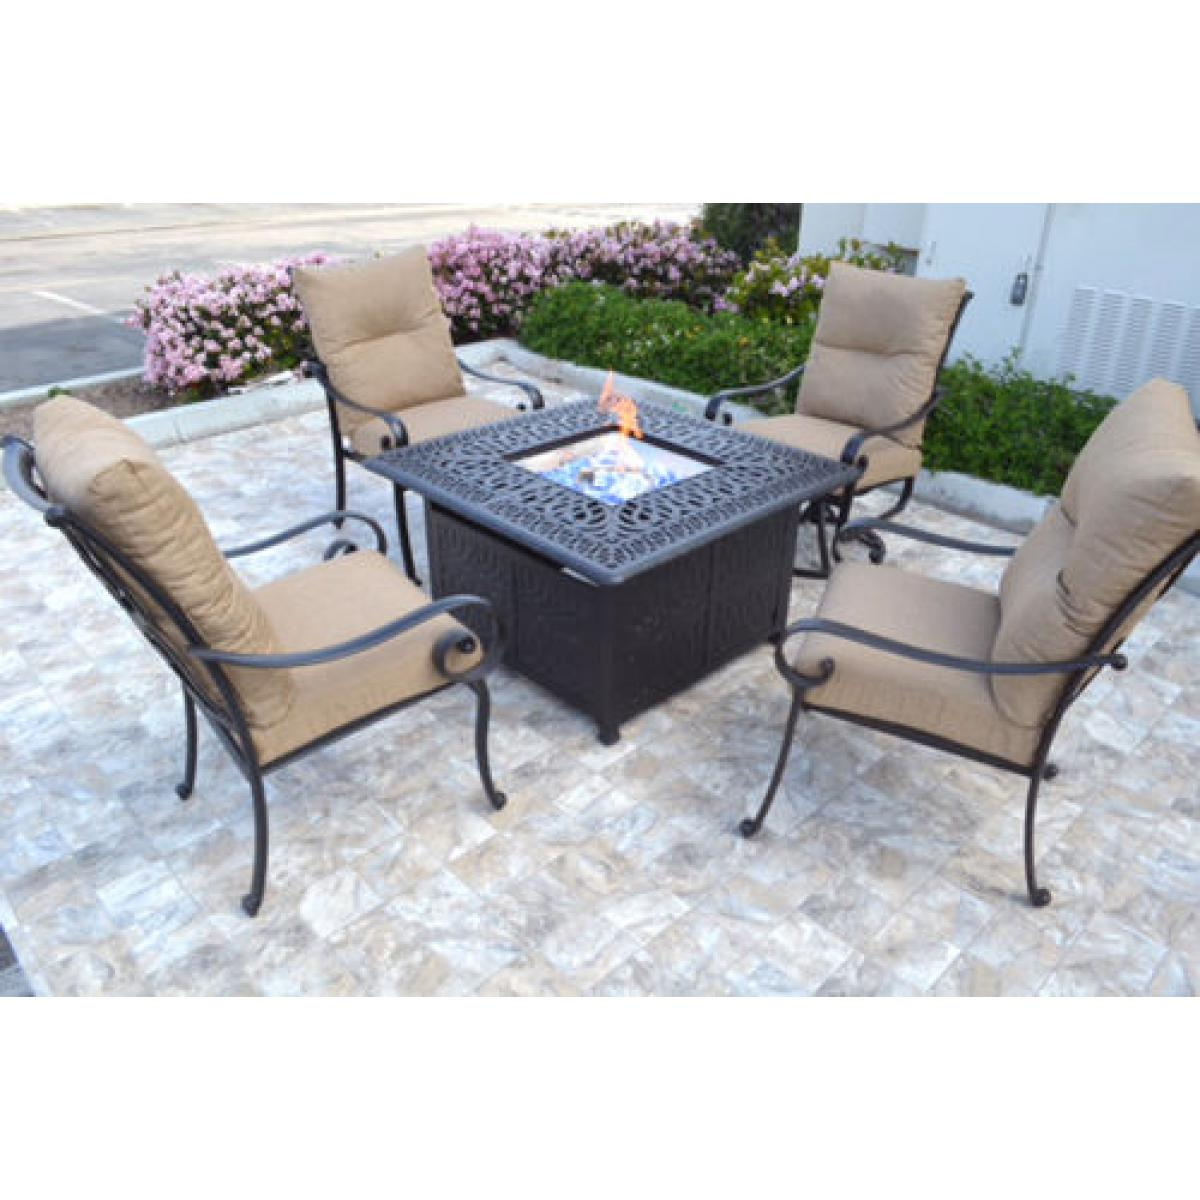 Conversation patio set Propane fire pit table outdoor aluminum Santa Anita  5 pc - Conversation Patio Set Propane Fire Pit Table Outdoor Aluminum Santa